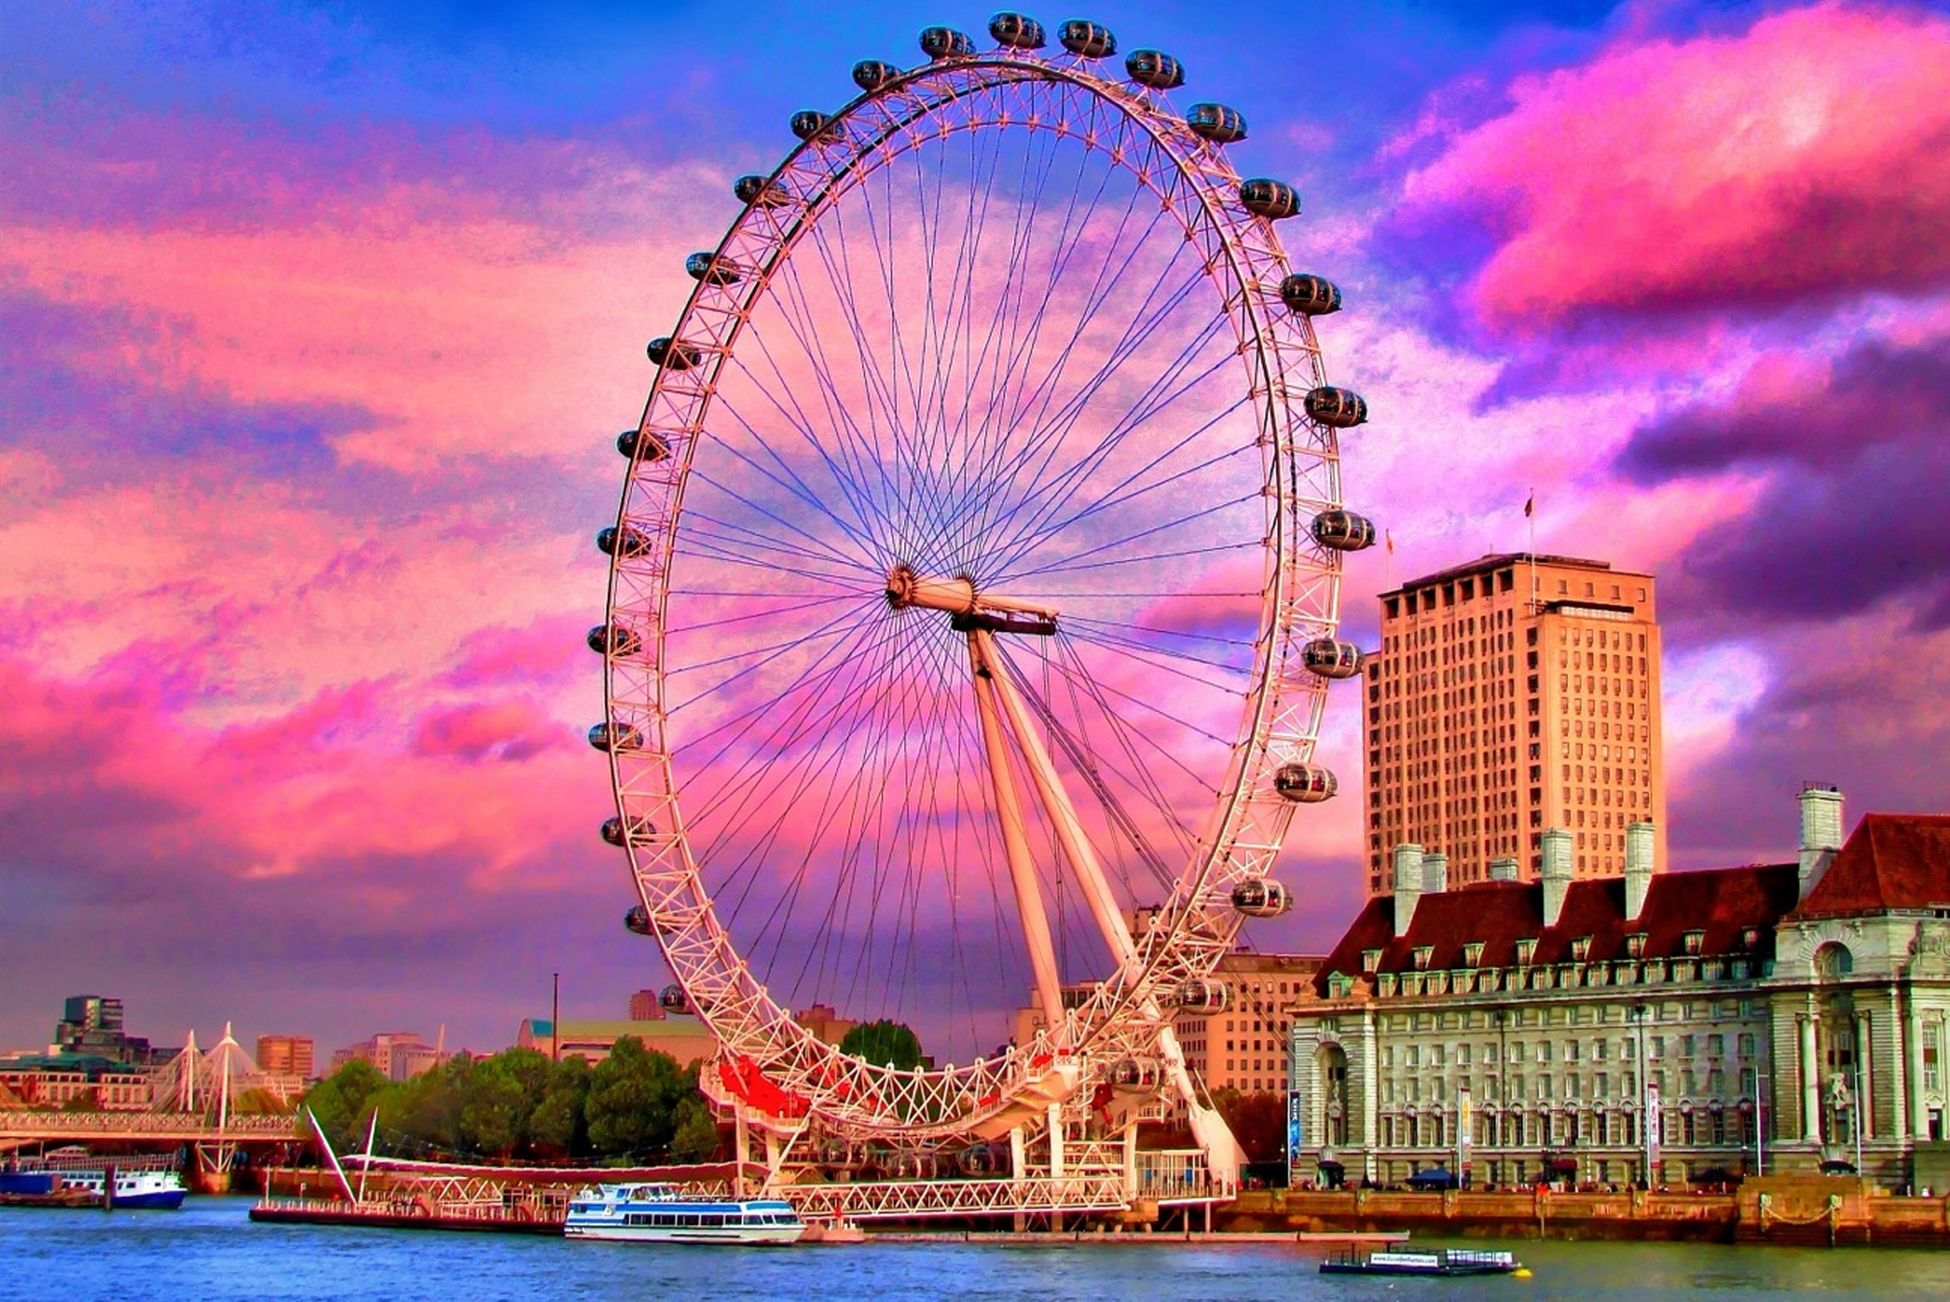 ferris wheel, amusement park, amusement park ride, arts culture and entertainment, sky, built structure, architecture, cloud - sky, fun, water, low angle view, enjoyment, building exterior, travel destinations, millennium wheel, illuminated, fairground ride, leisure activity, big wheel, cloudy